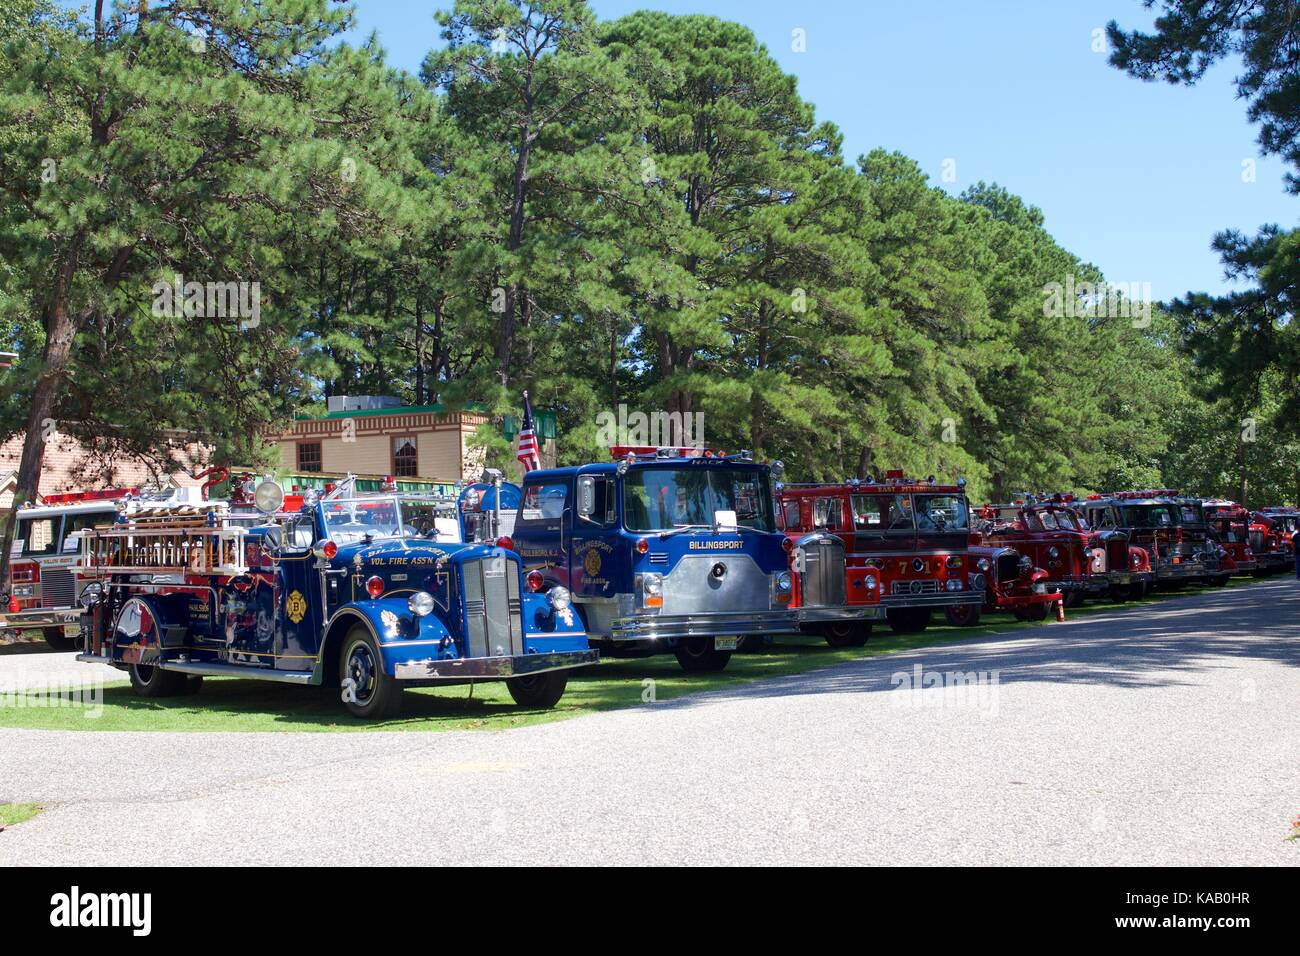 Vintage fire engines on display at the 37th Annual Fire Apparatus Show and Muster at WheatonArts, in Millville, Stock Photo